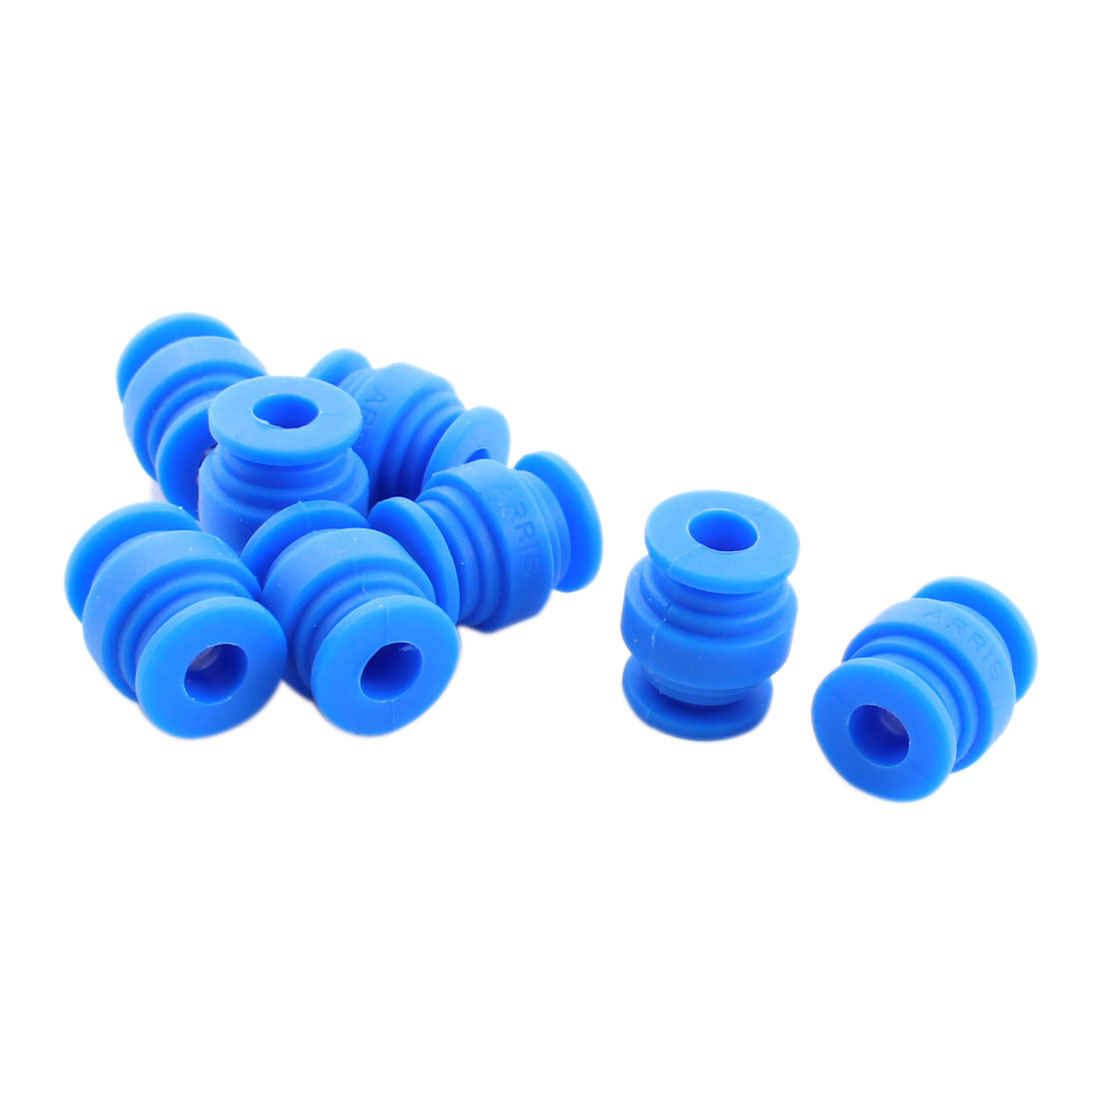 8 Pcs 8mm x 20mm Blue Rubber Shock Absorption Anti Vibration Damping Ball for FPV Gimbal Camera Mount